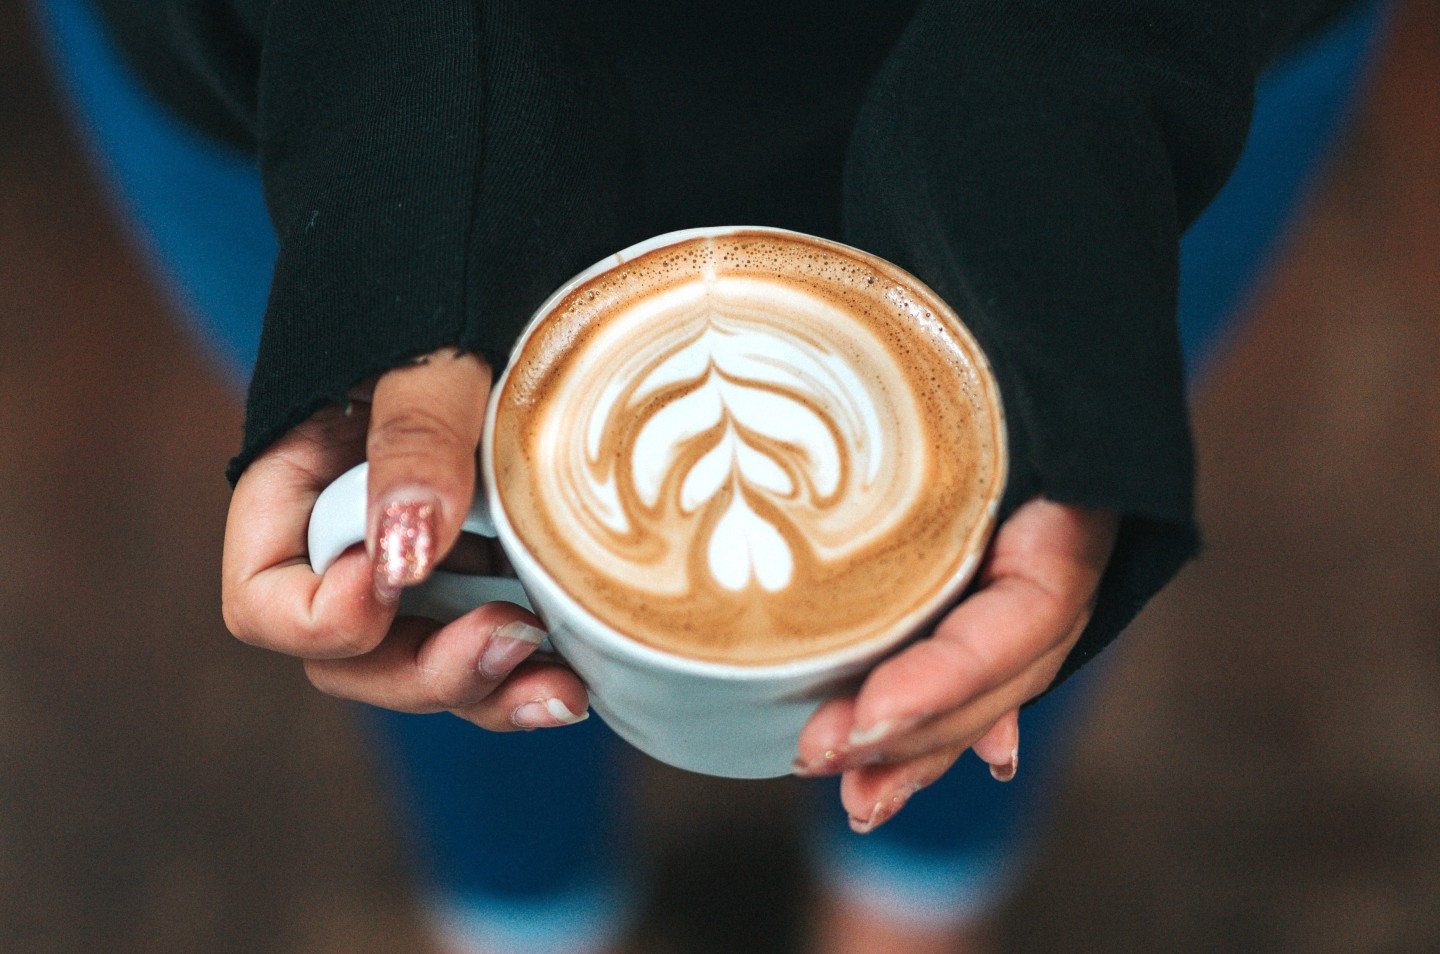 coffee-art-in-hands